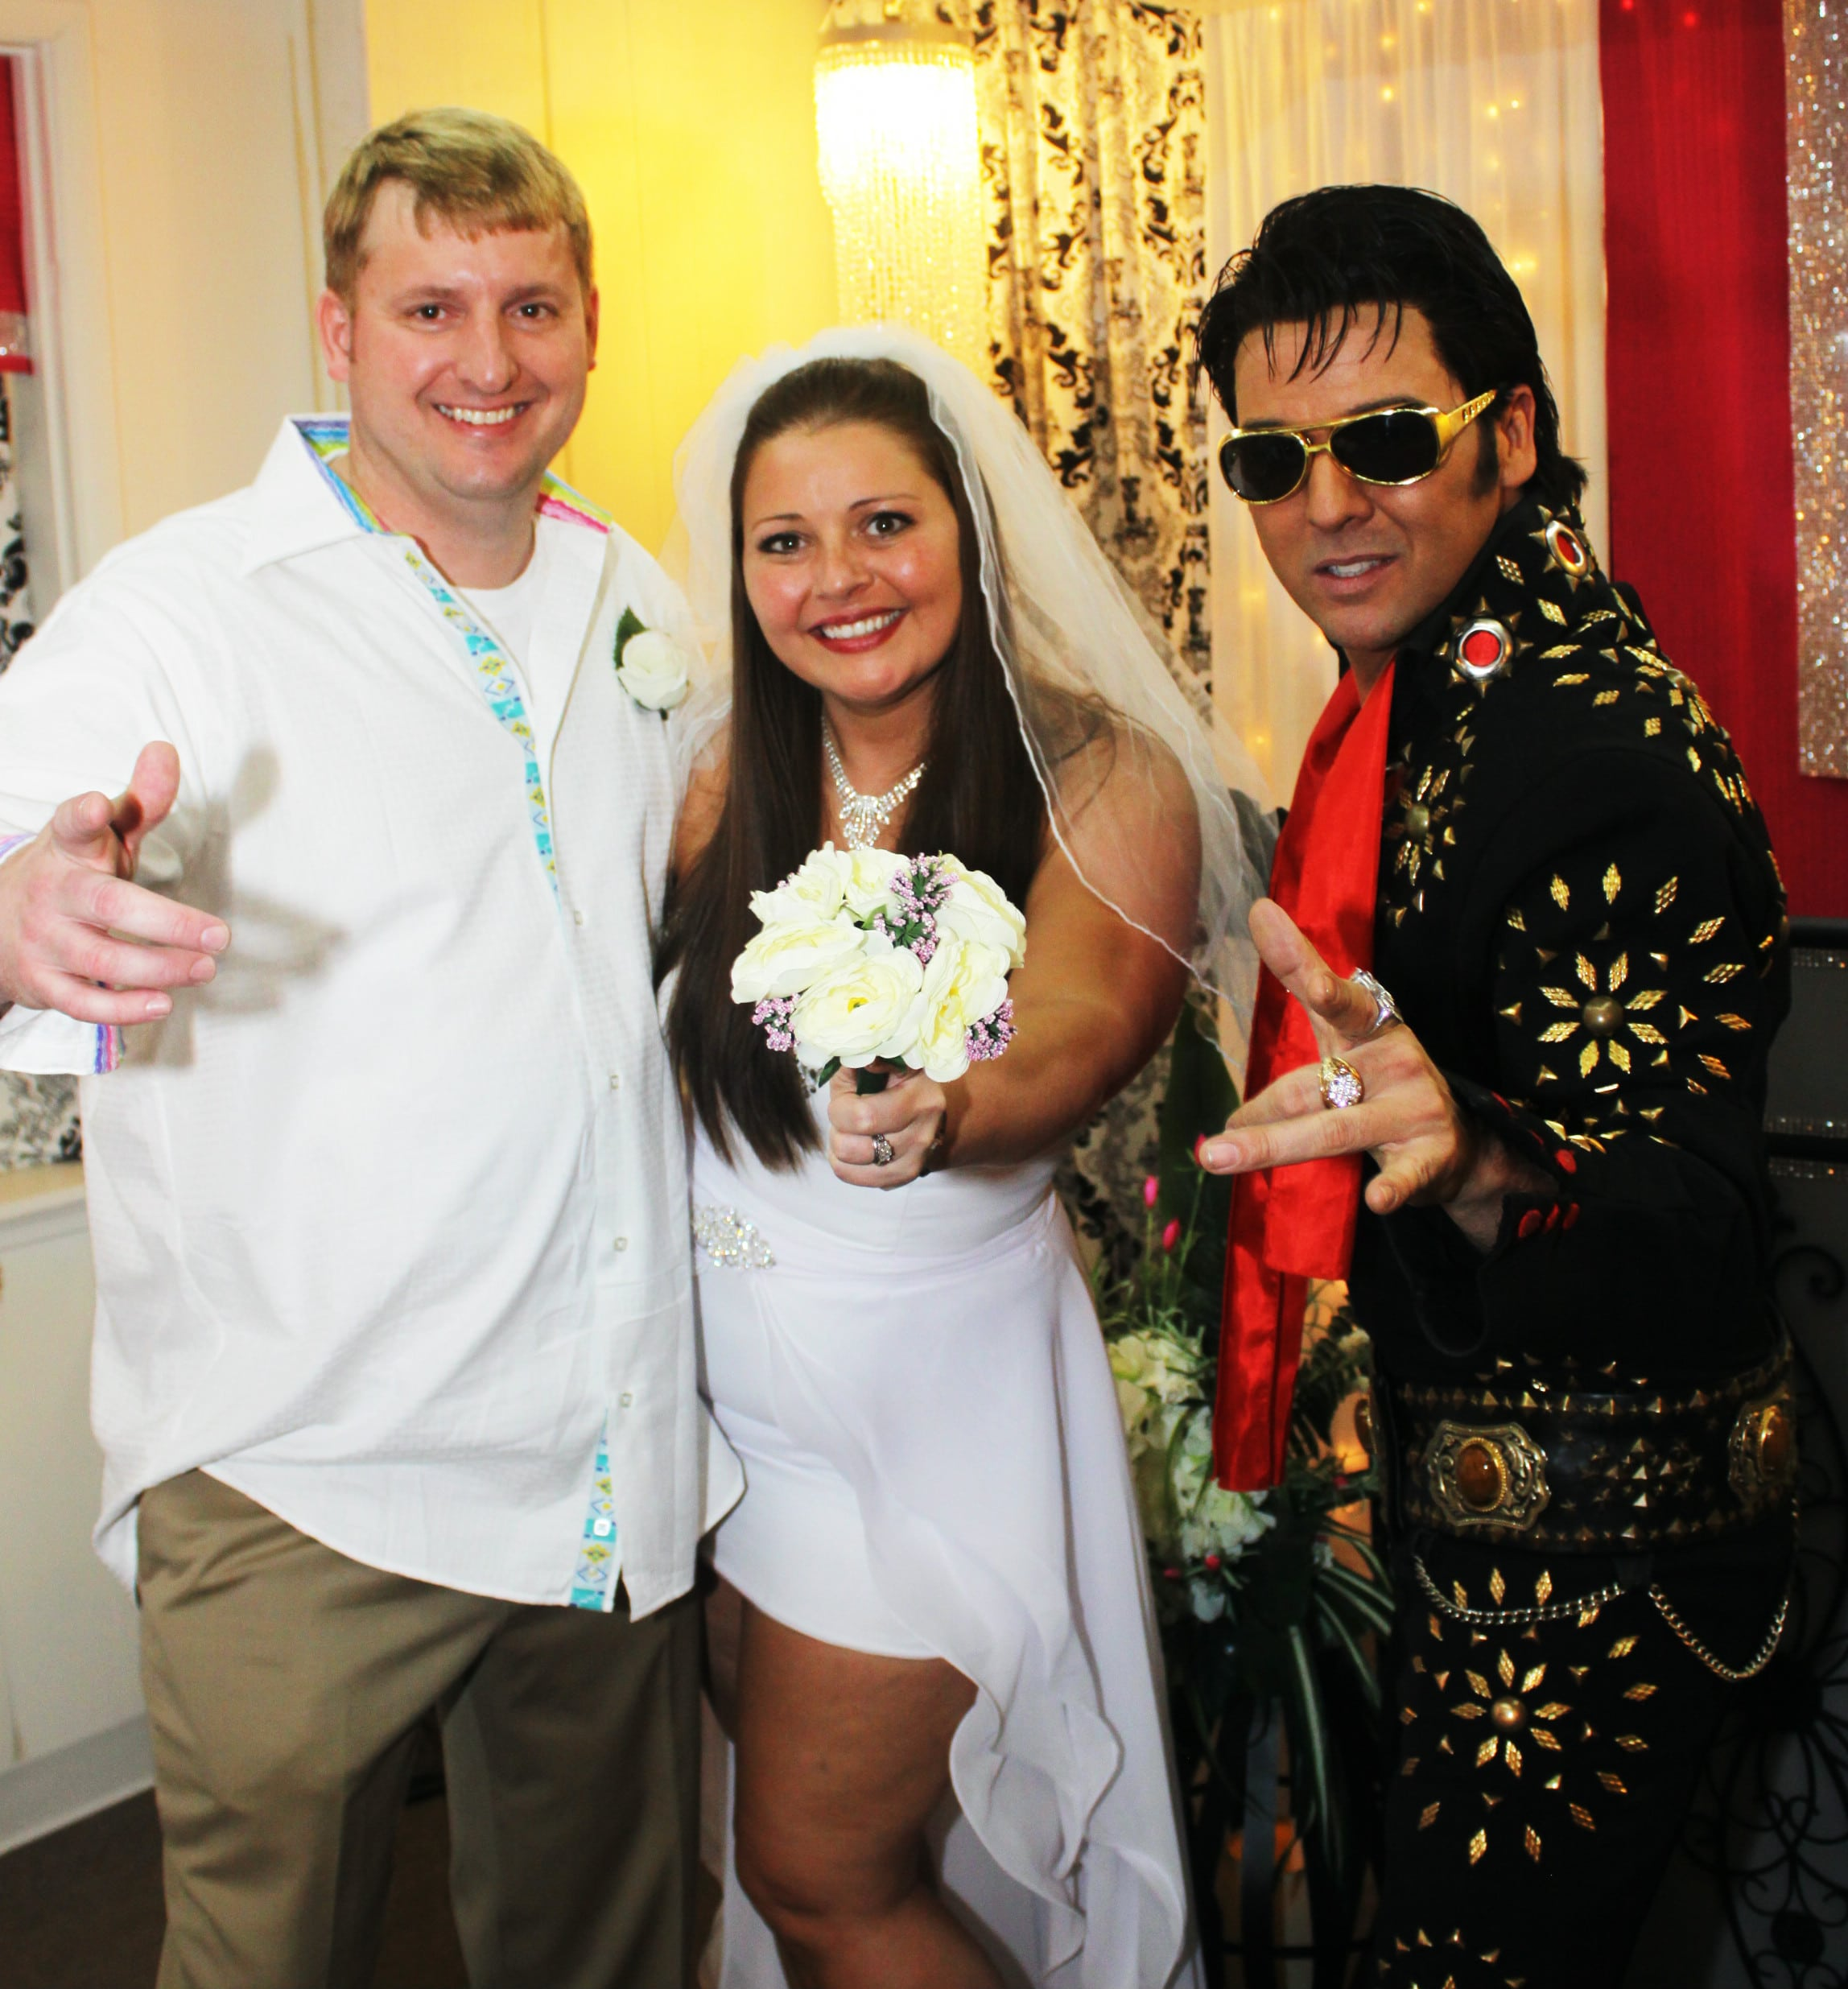 Elvis with Bride and Groom